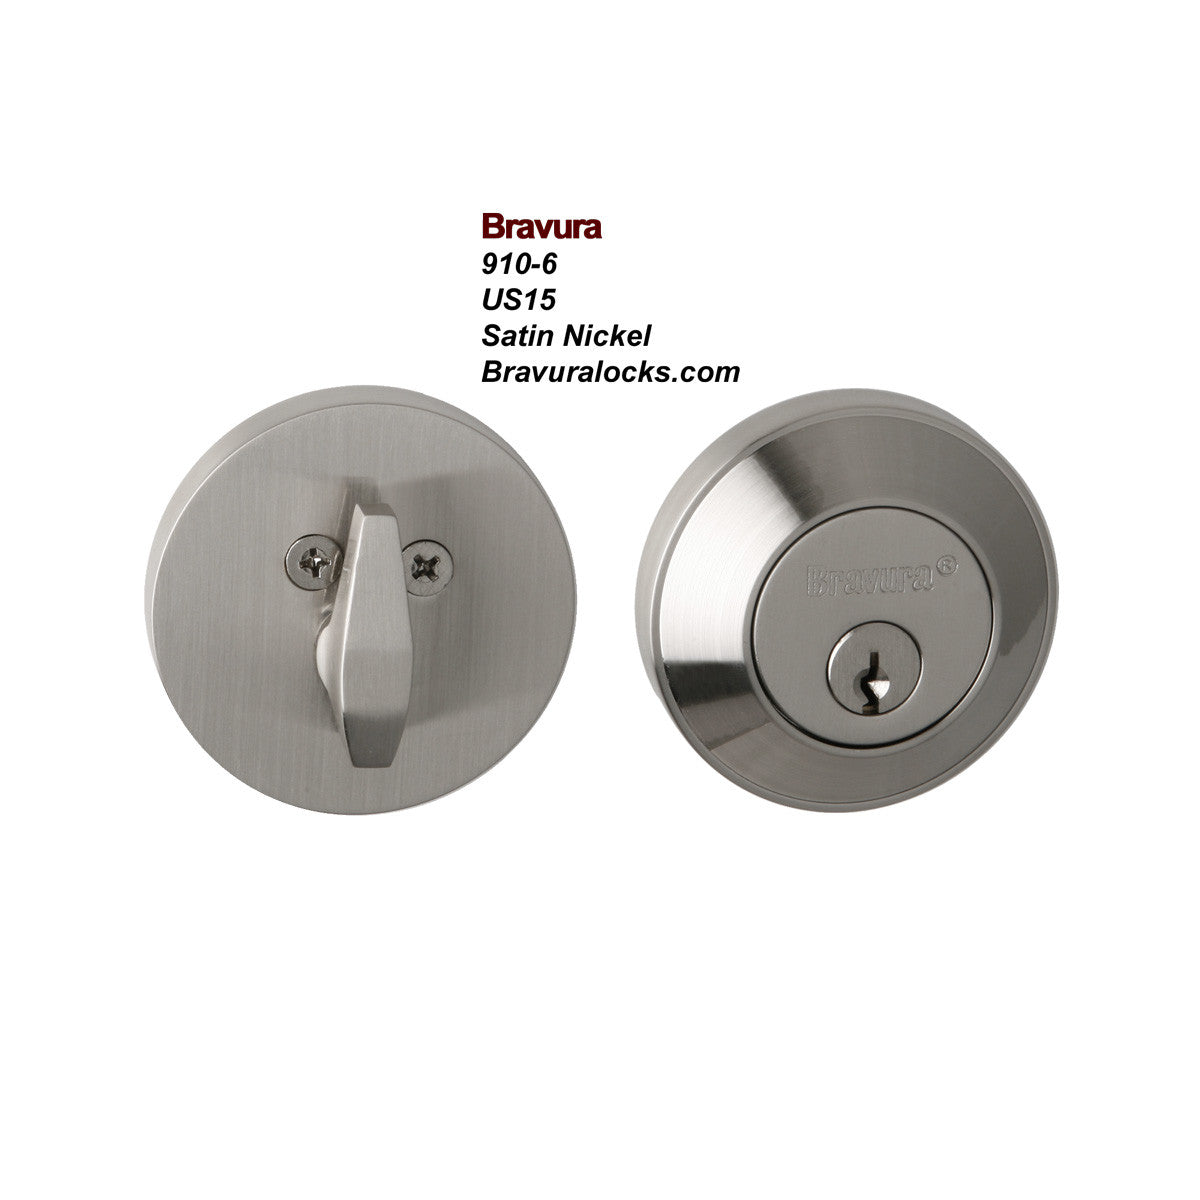 Bravura 910-6 Deadbolt Exterior Door Lock - Solid Forged Brass ...